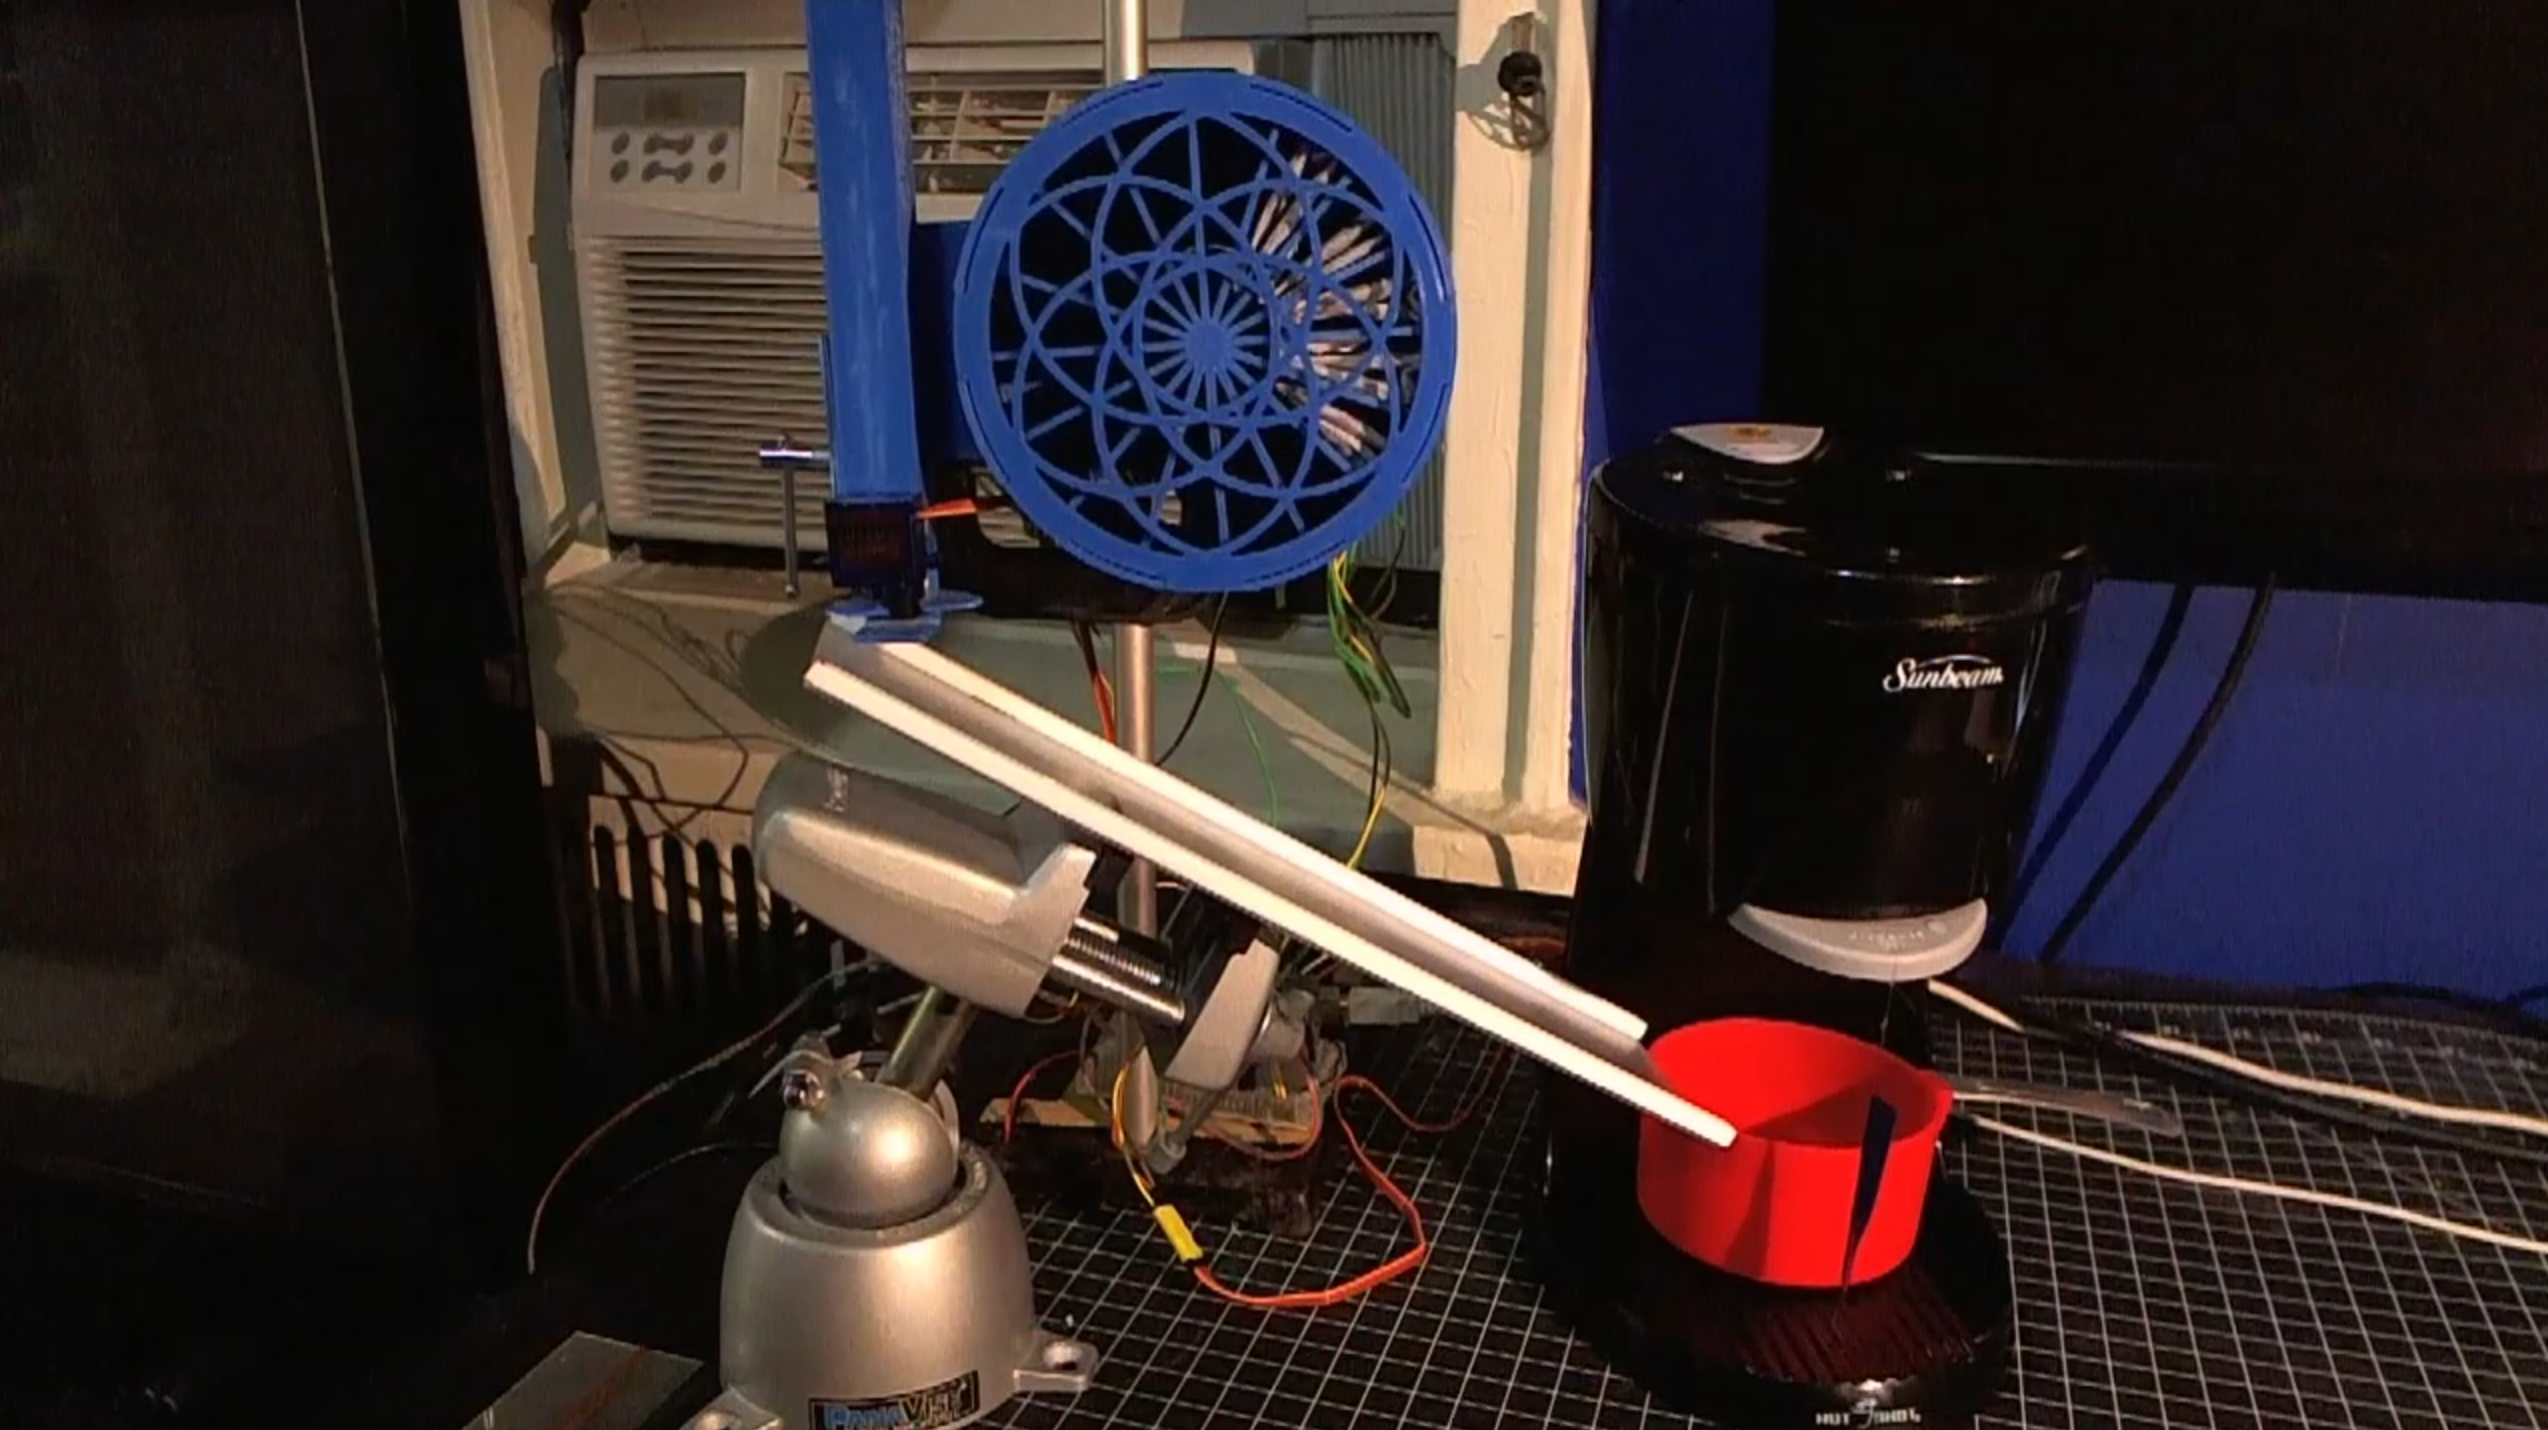 Picture of Spacebrewer - Remote Tea Making Device